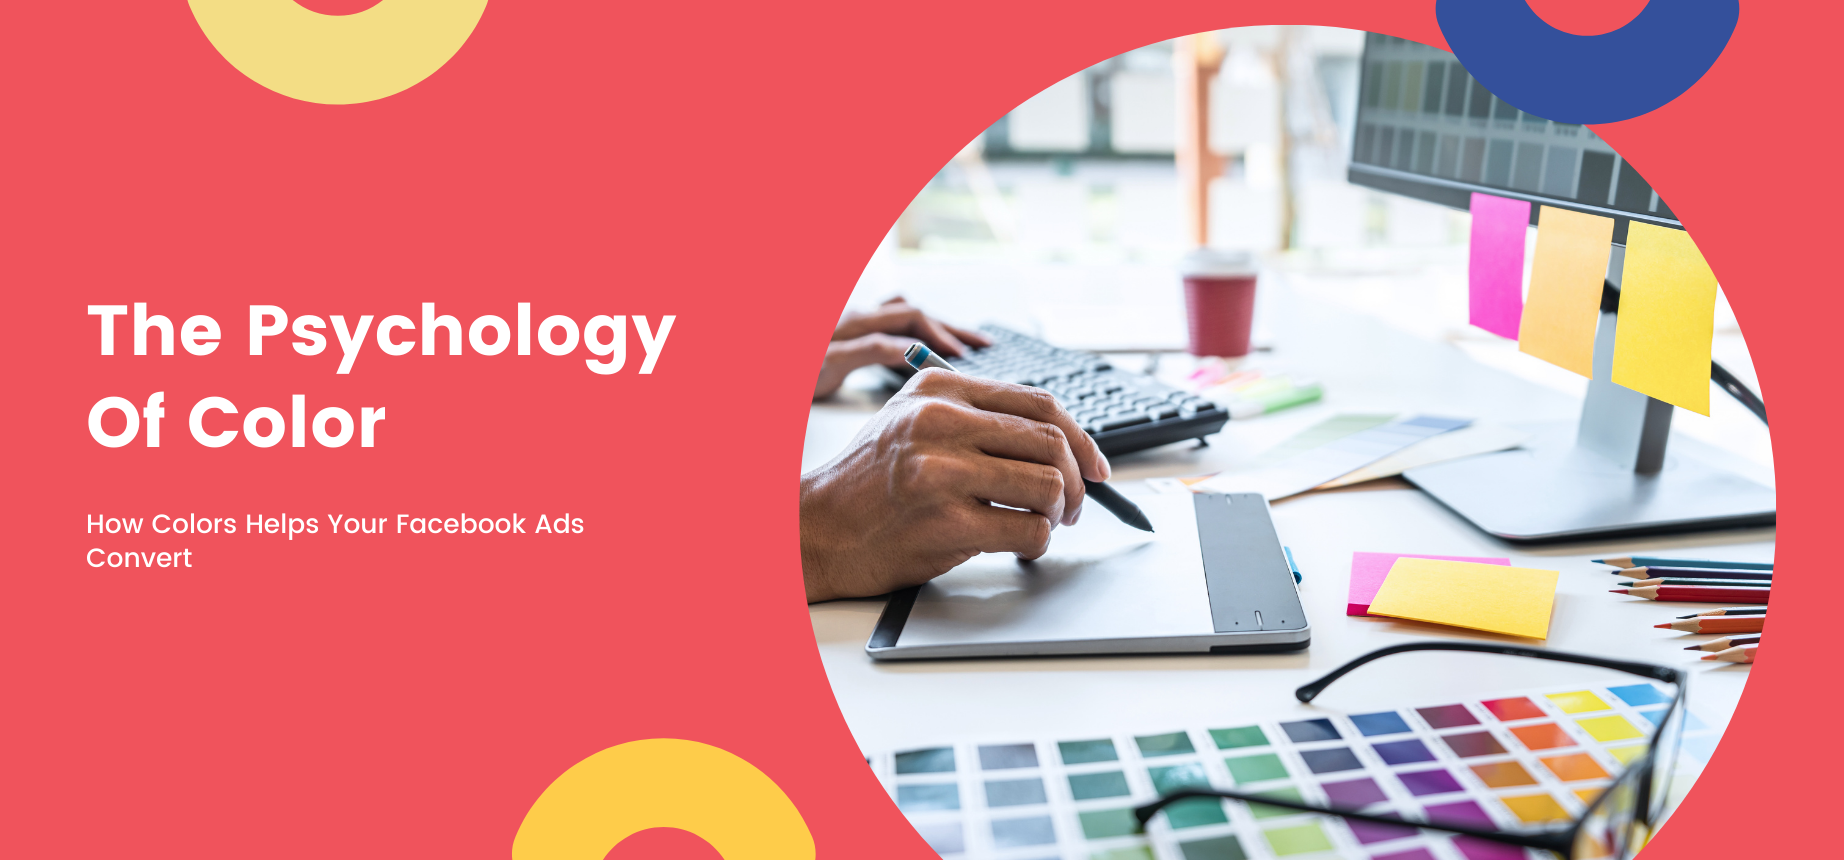 AgencyVista_Blog_the-psychology-of-color-how-colors-helps-your-facebook-ads-convert